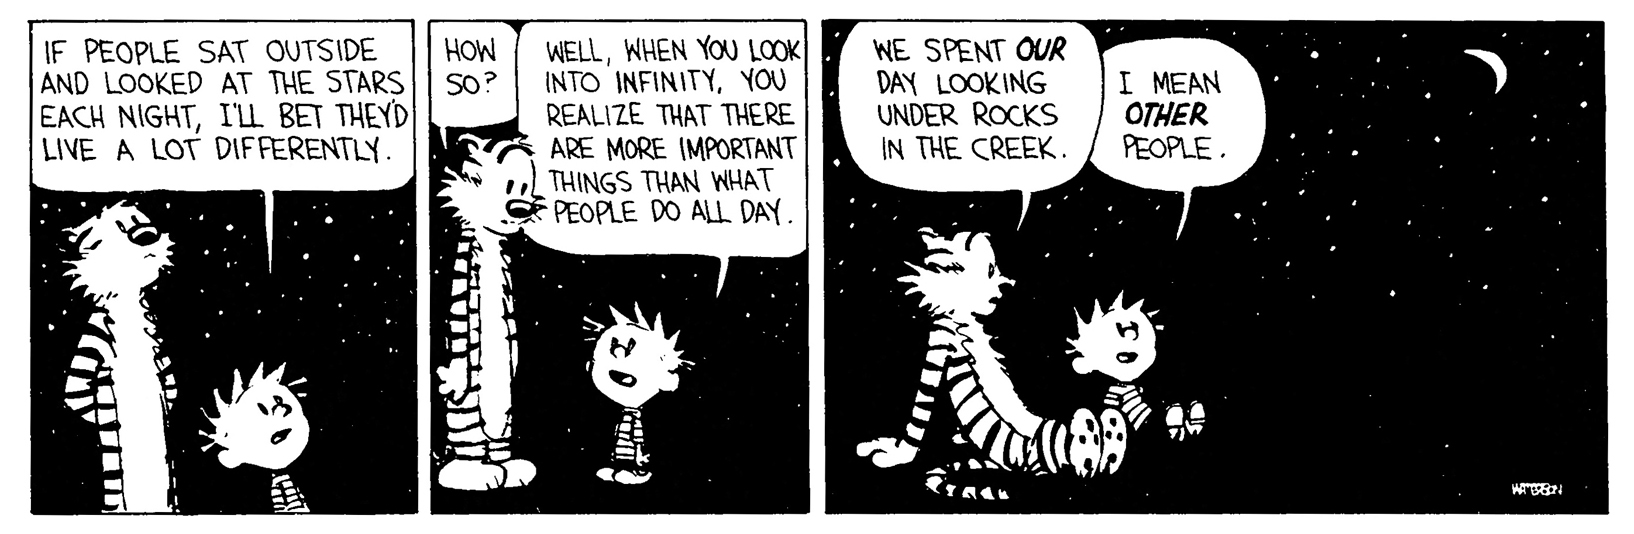 calvin-and-hobbes-quotes-look-at-stars